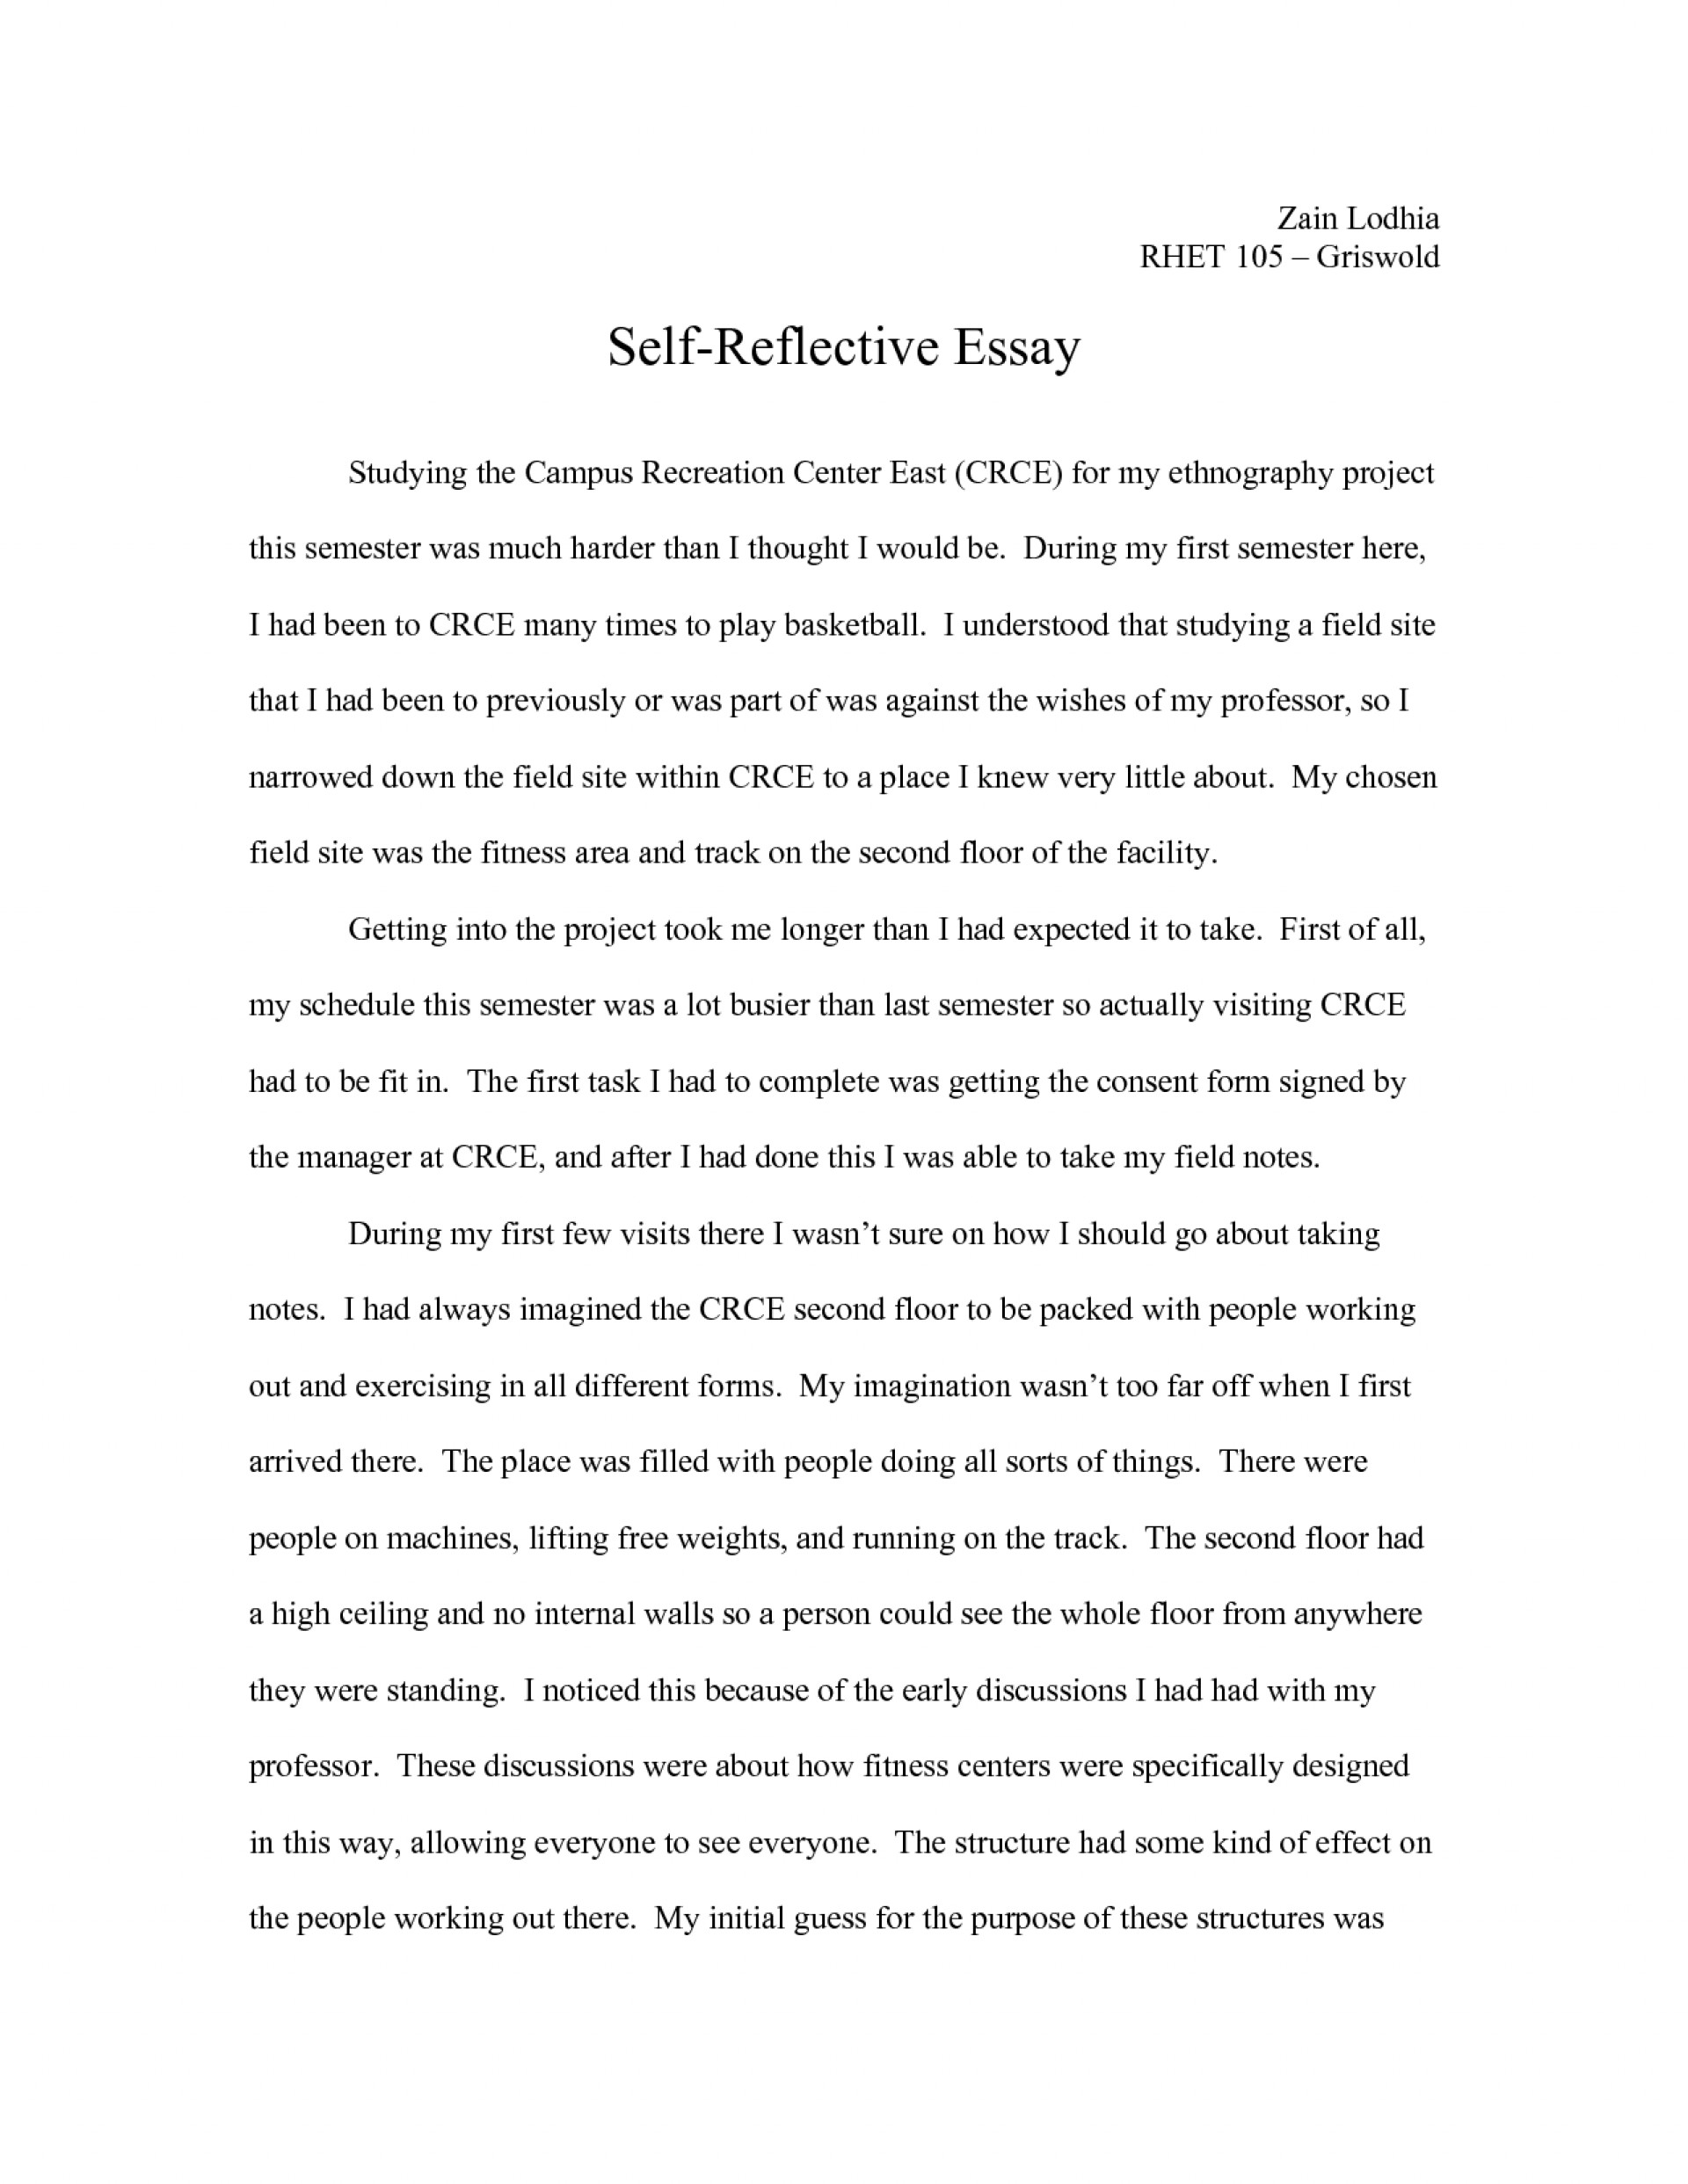 007 Essay Example Qal0pwnf46 Good Fascinating Examples University Explanatory For Middle School Introduction 1920